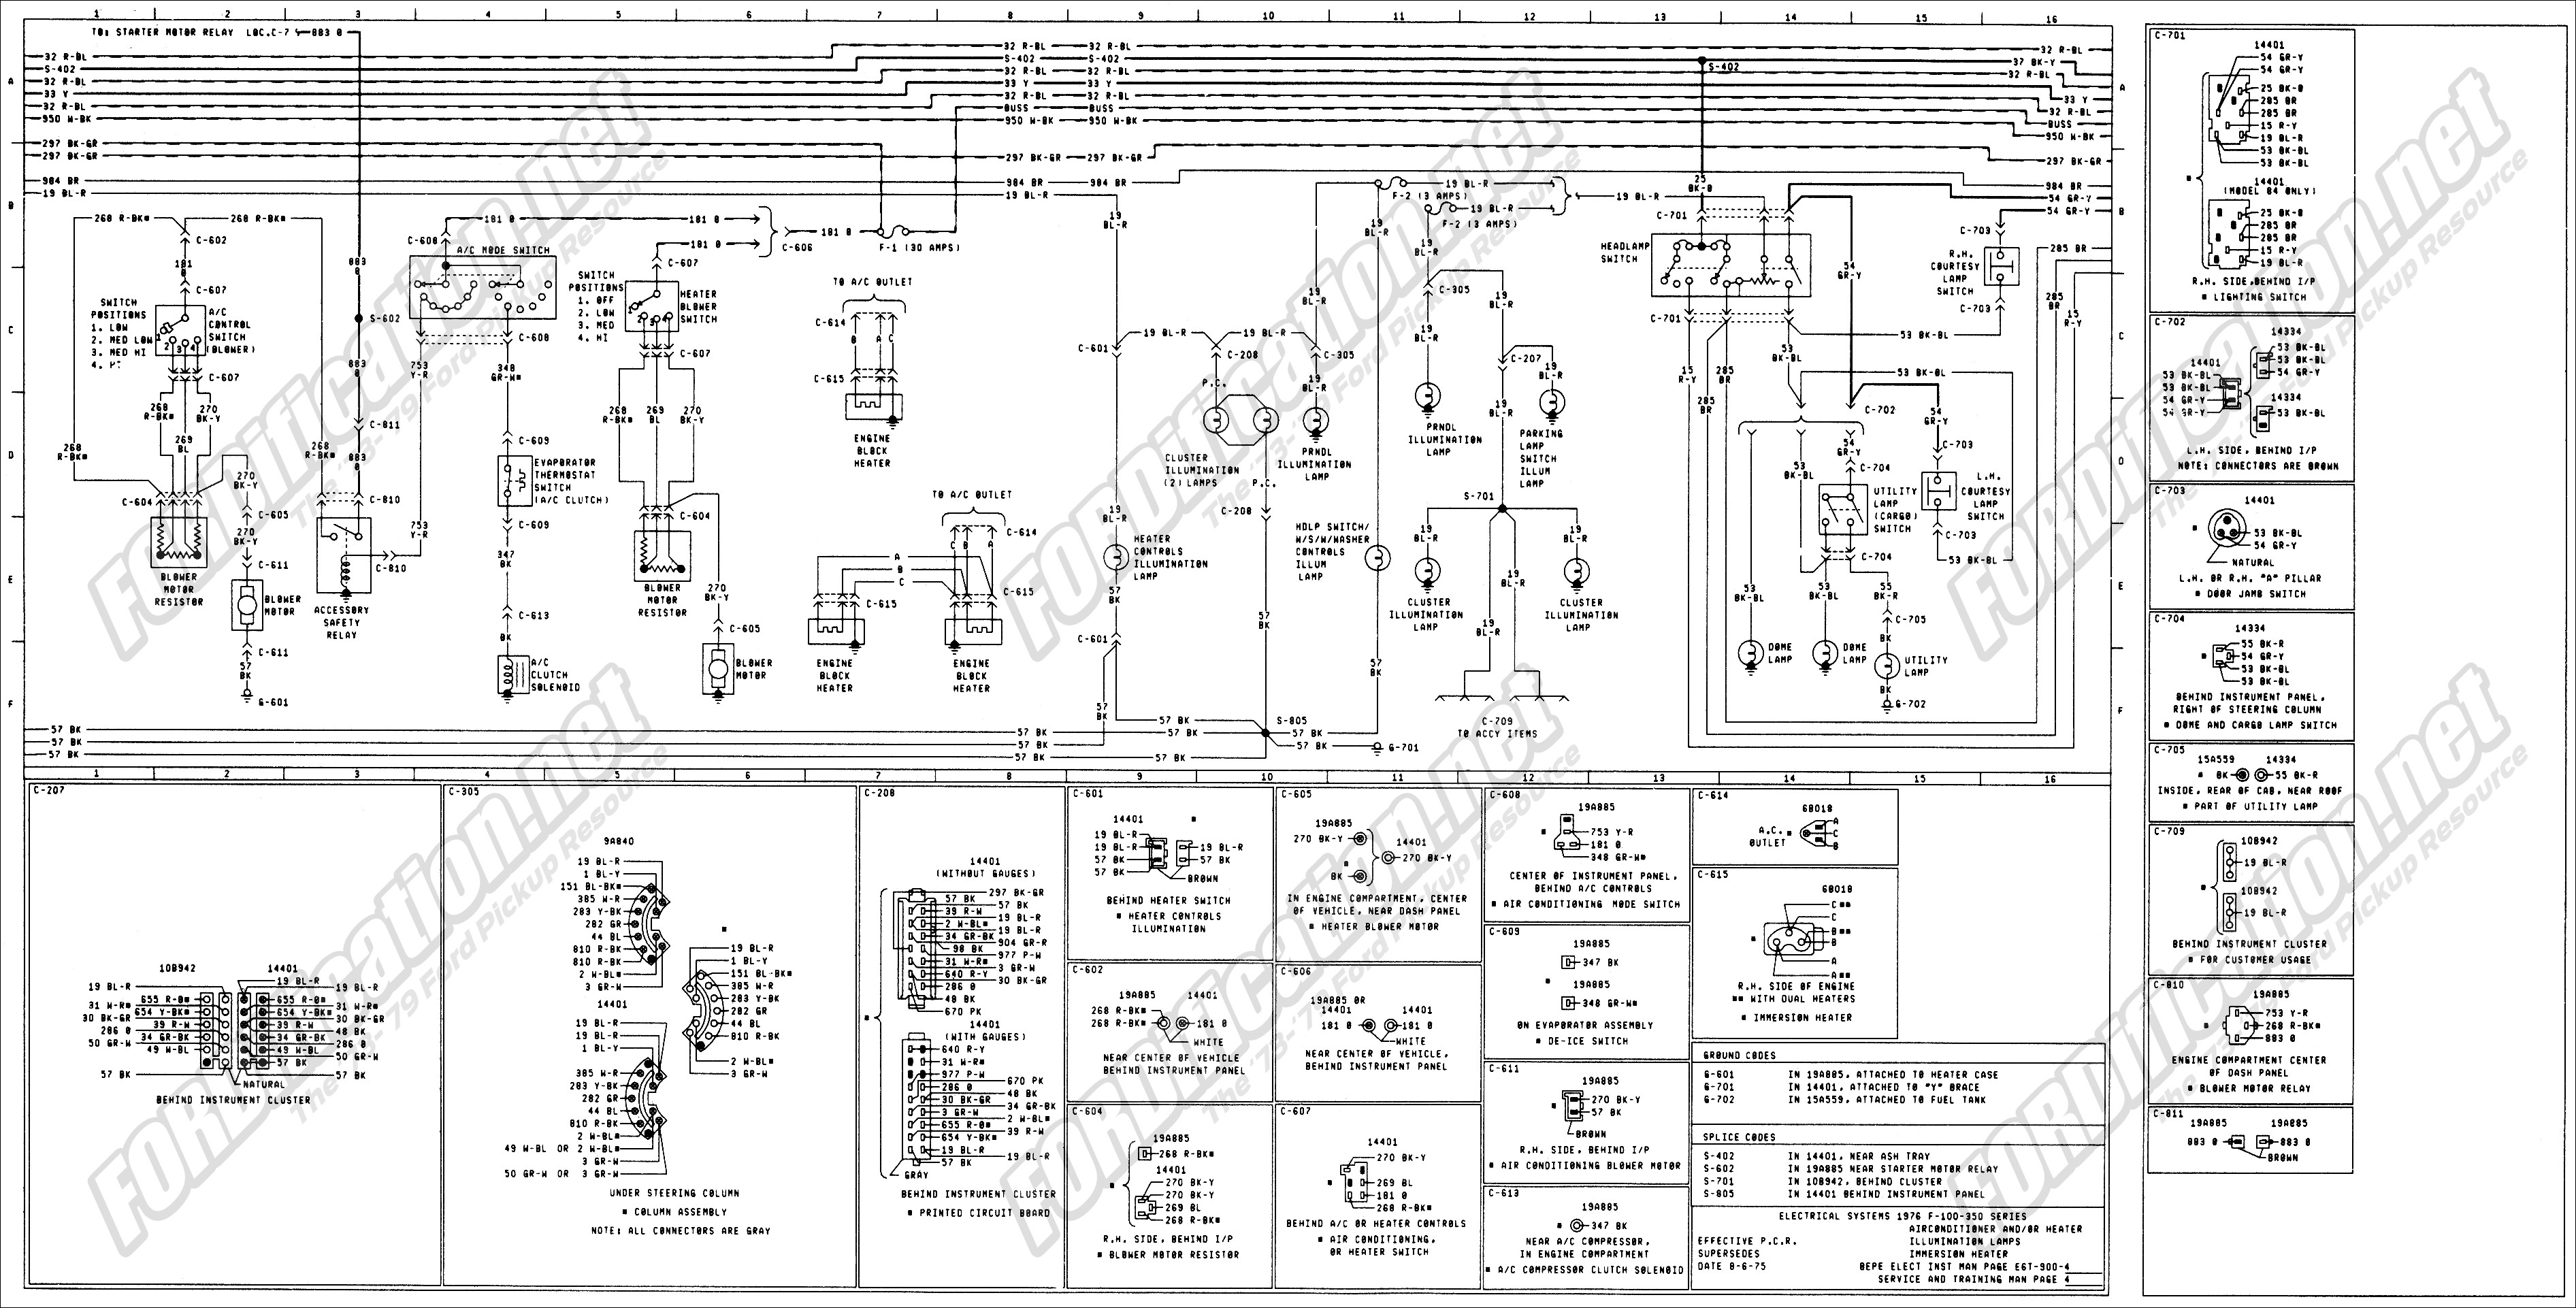 1979 ford truck wiring diagram diagram schematic 2005 ford f-150 wiring schematic 2000 ford f150 wiring diagram 1965 ford f100 alternator wiring 1986 ford f 250 ignition switch wiring diagram 1979 ford truck wiring diagram